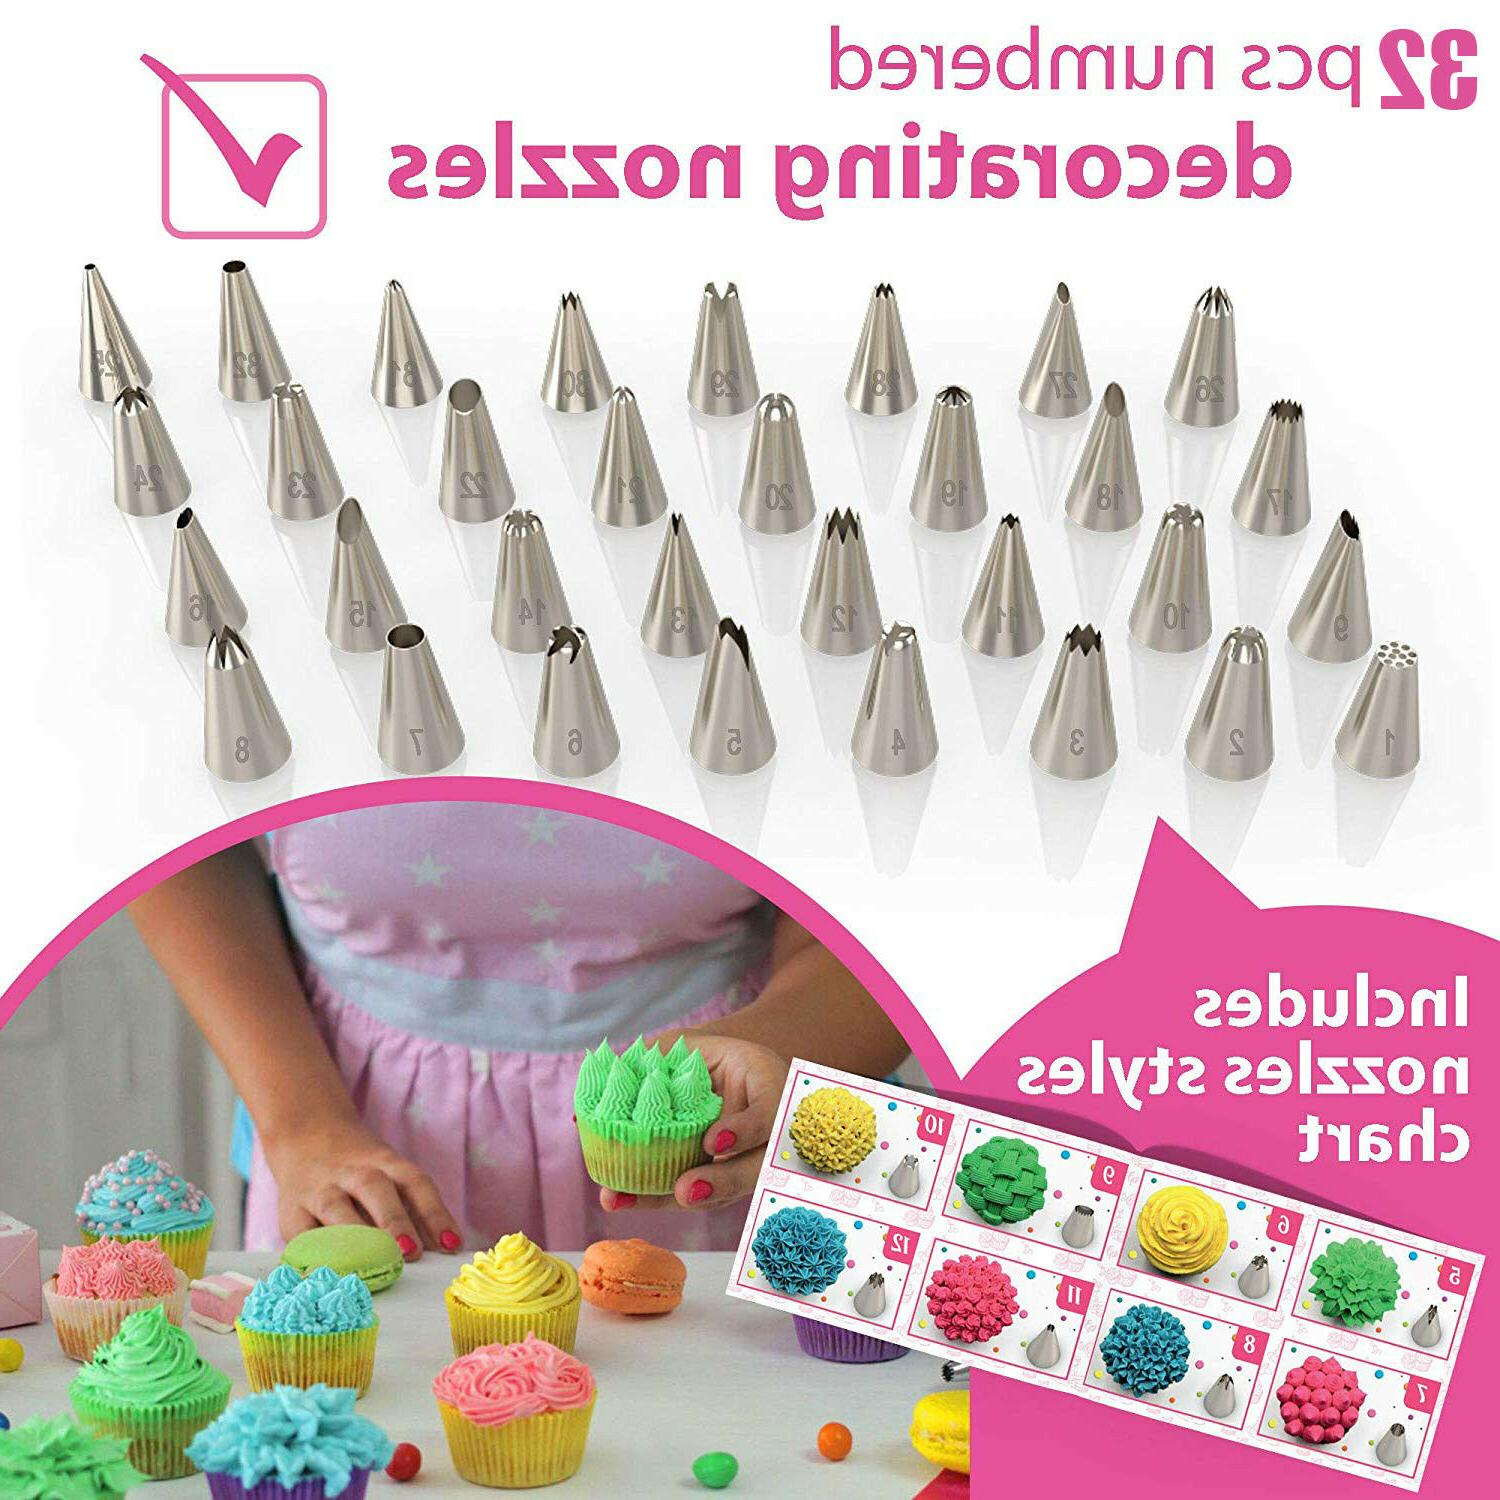 Cake Decorating Kit 38 Tips Bags Nozzles